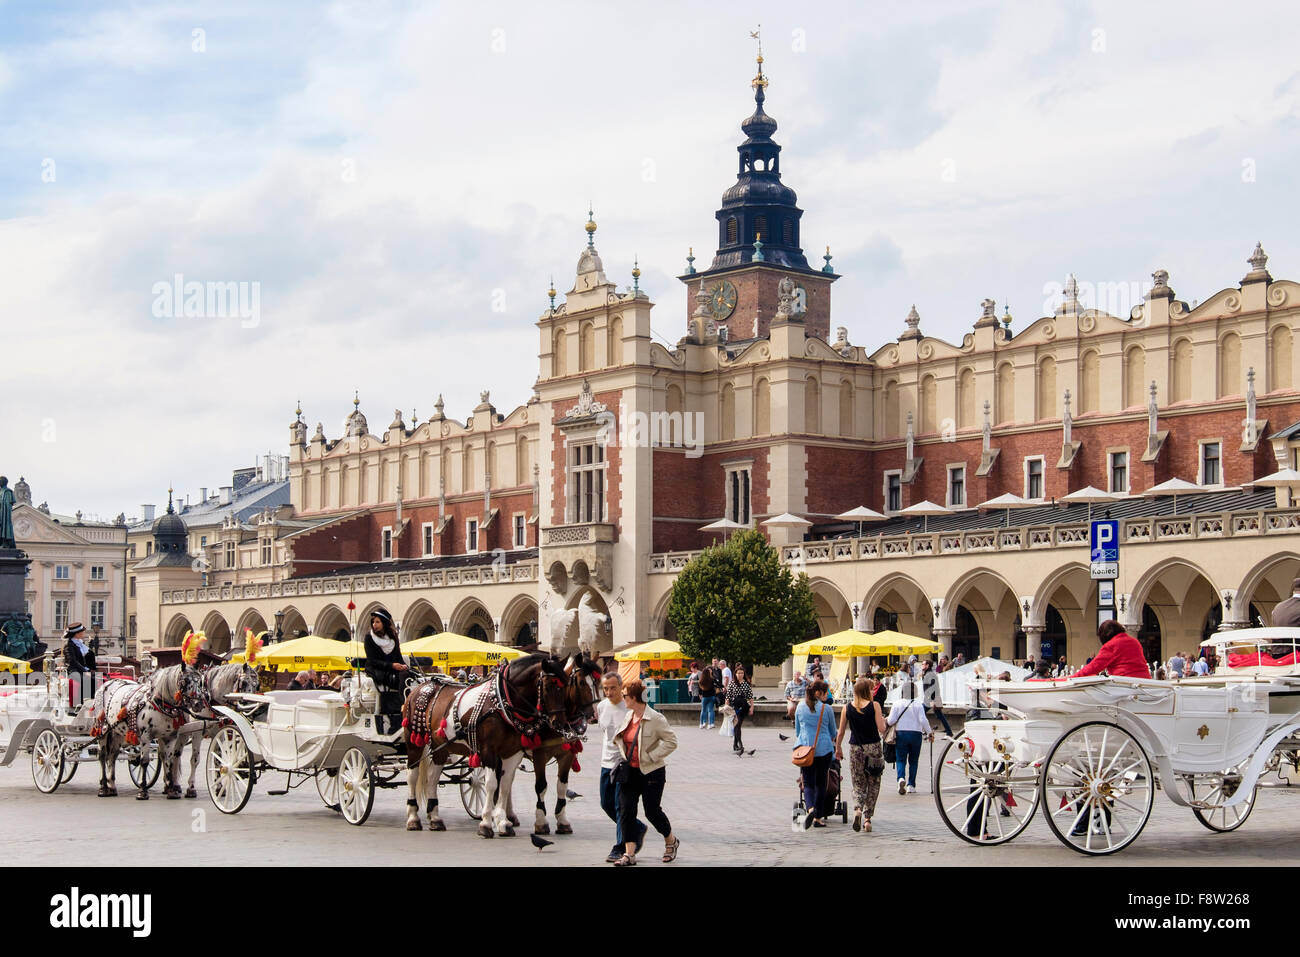 City tour horse-drawn carriages outside 13th century Sukiennice (Cloth Hall or Drapers' Hall) in Market Square - Stock Image